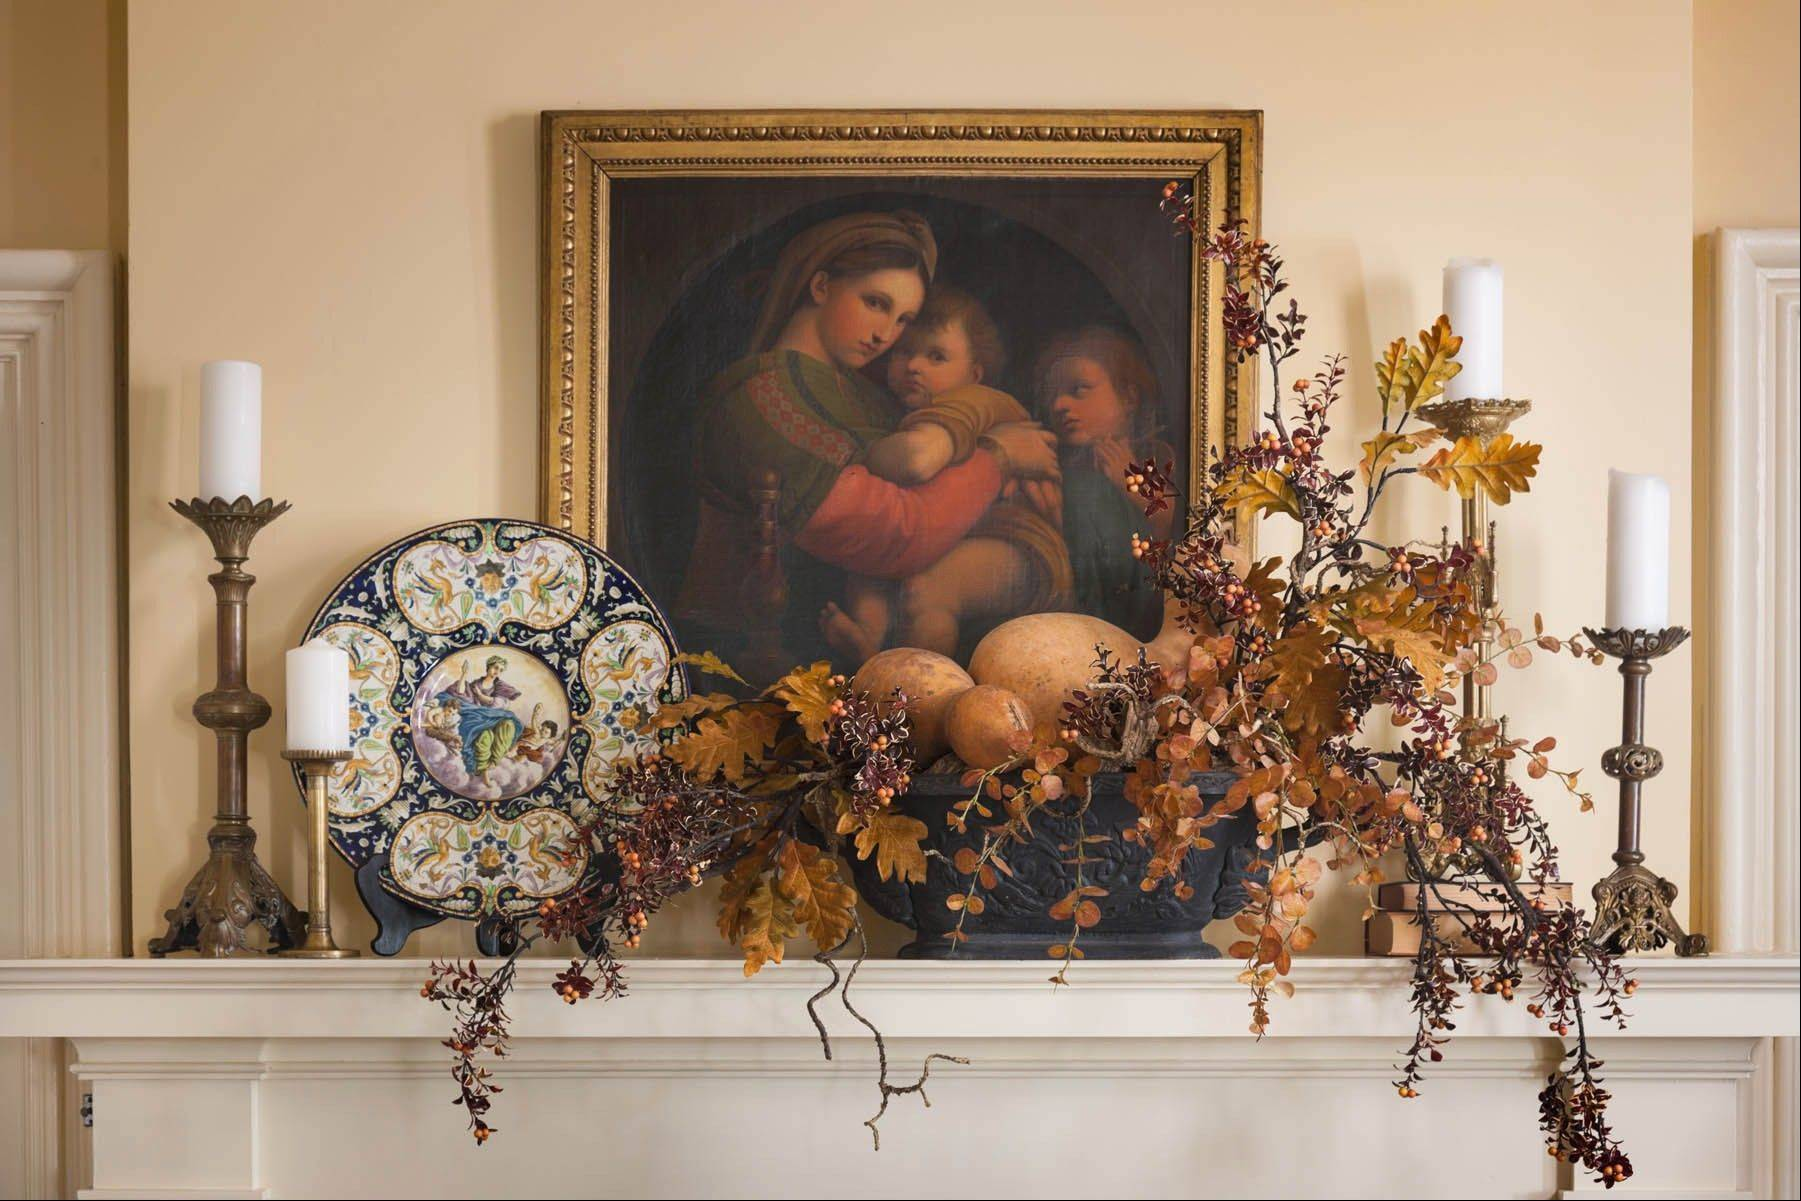 One of the easiest � and most powerful � places you can trick up for autumn is your fireplace mantel.